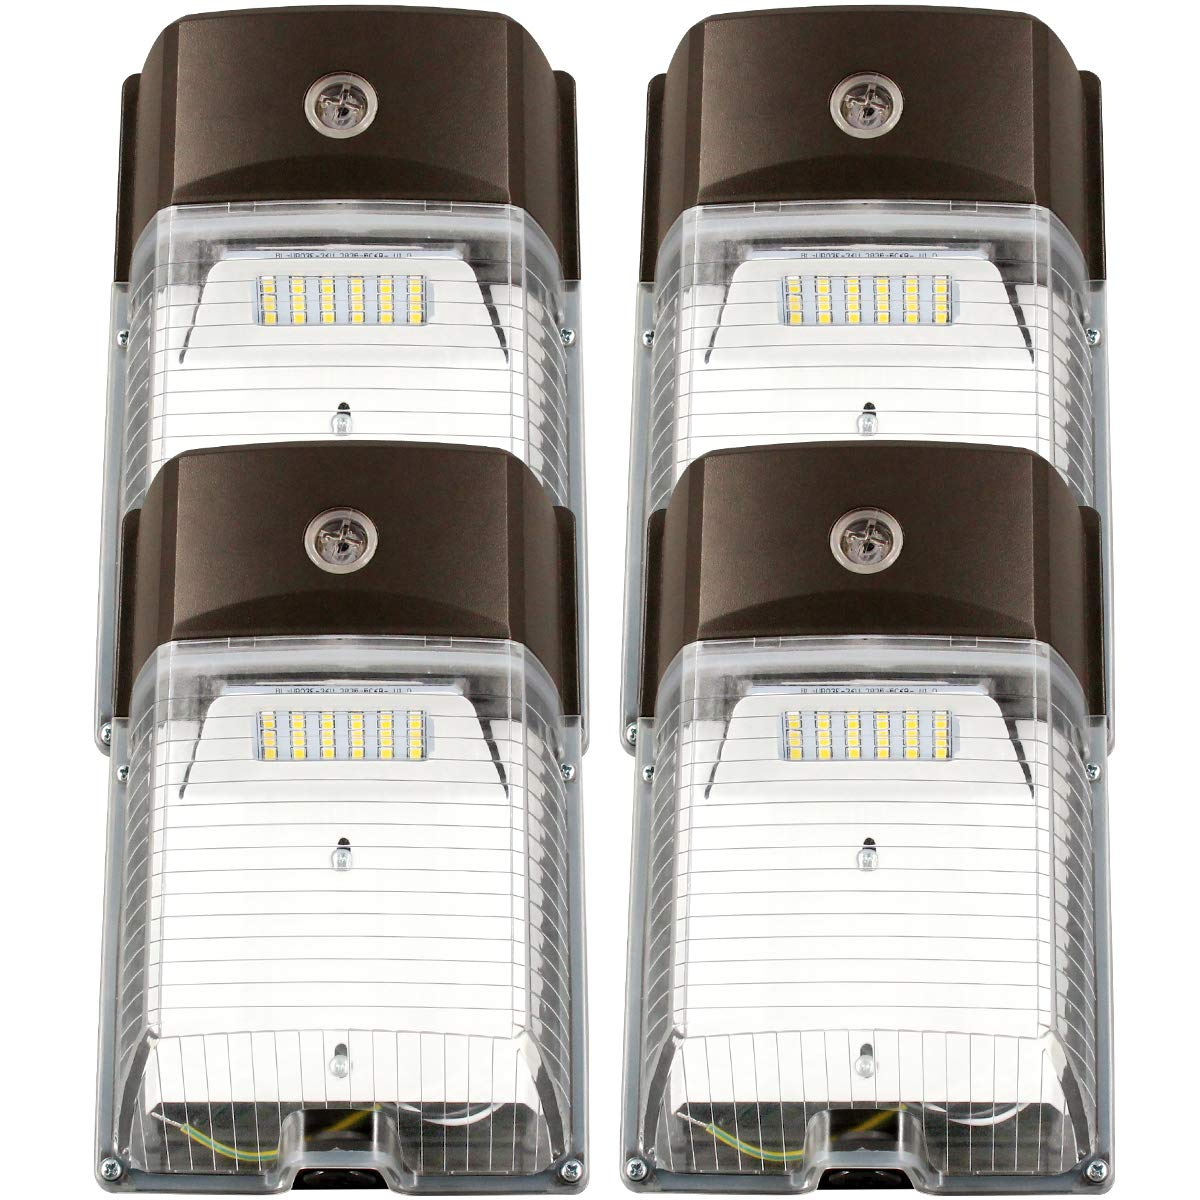 26W 1PK ZJOJO Outdoor//Entrance Security Light 5-Year Warranty LED Wall Pack Light 26W 3000lm(Photocell Included),120-277V 5000K Daylight cETLus-Listed Dusk to Dawn 150-250W MH//Hps Replacement 5000K